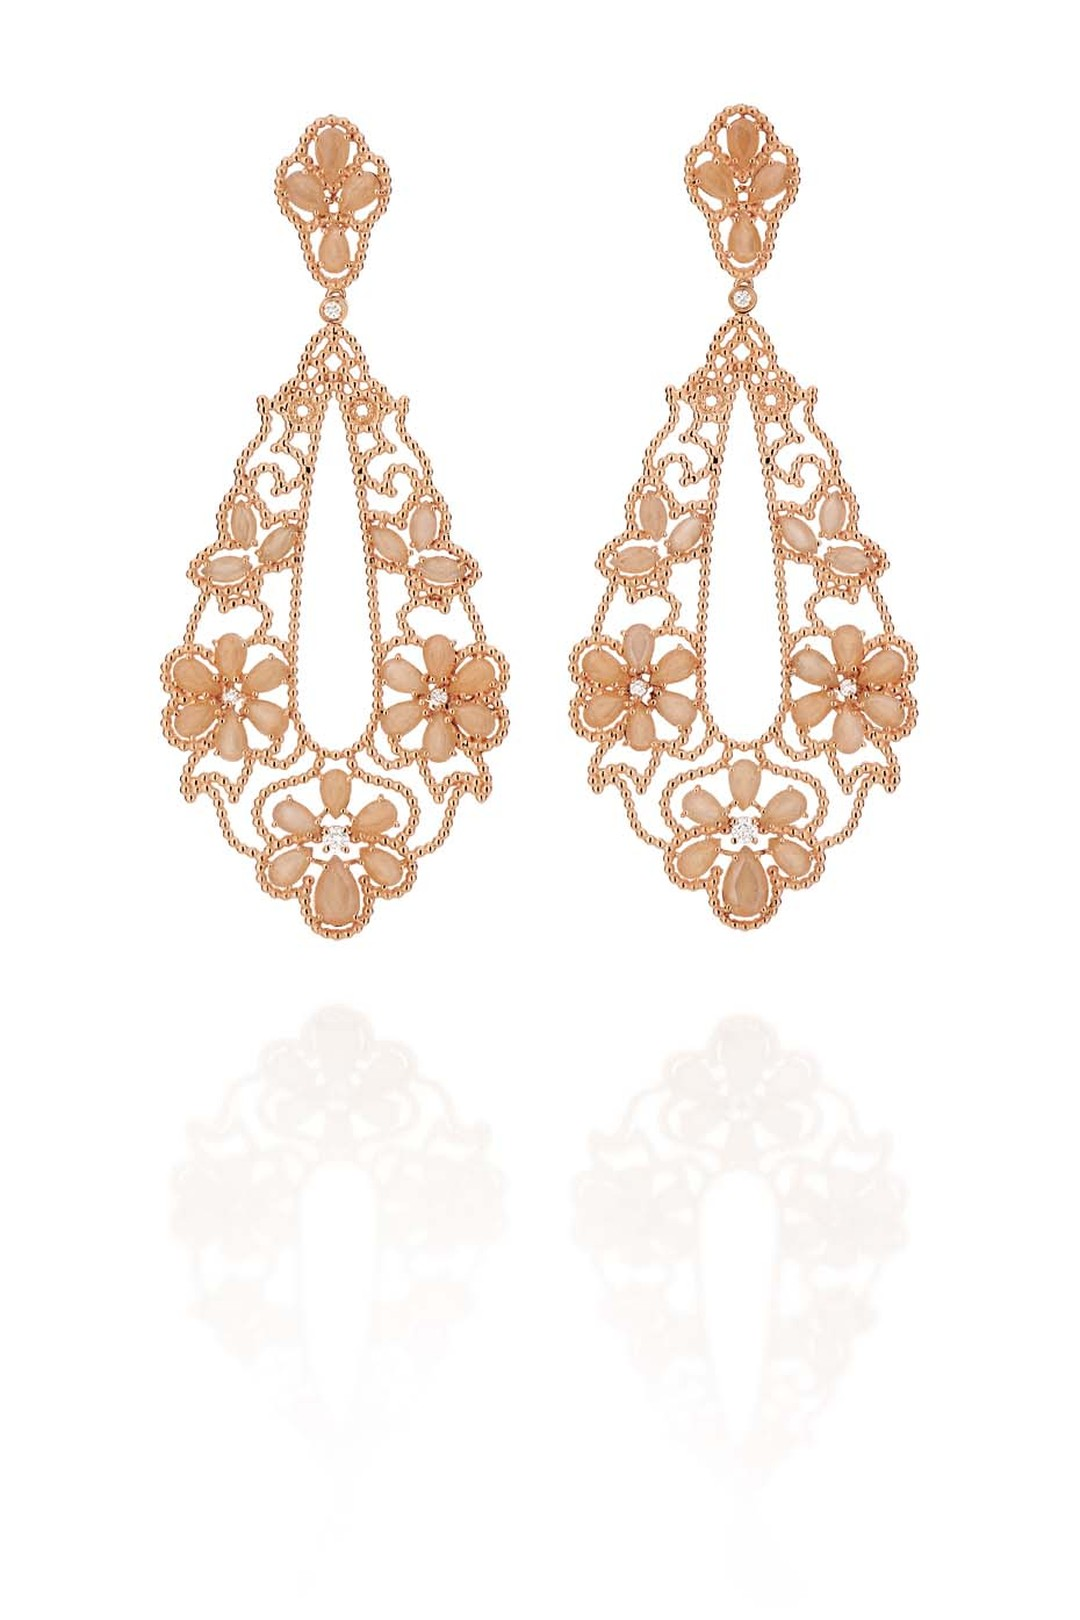 Carla Amorim rose gold Ibirapuera earrings with peach moonstone and white diamonds.